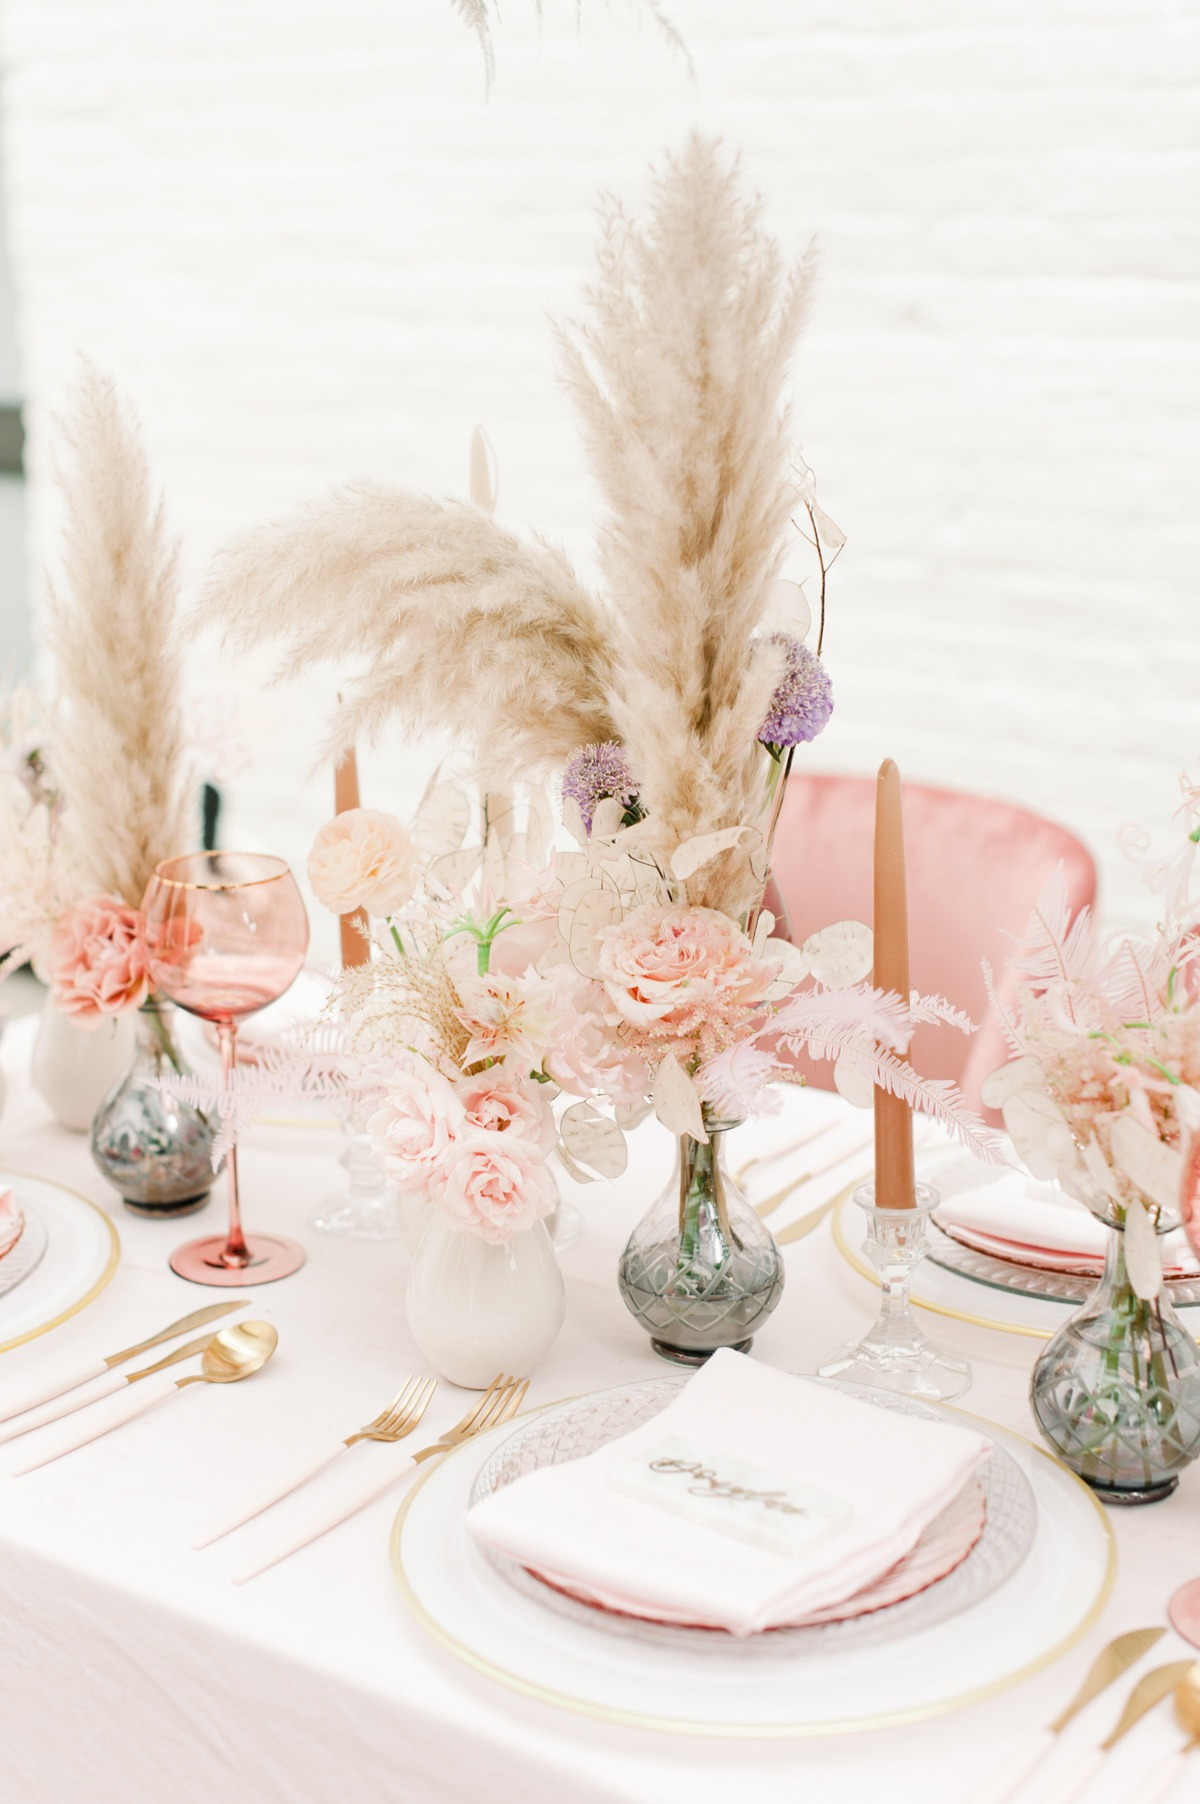 Pampas grass wedding centerpiece